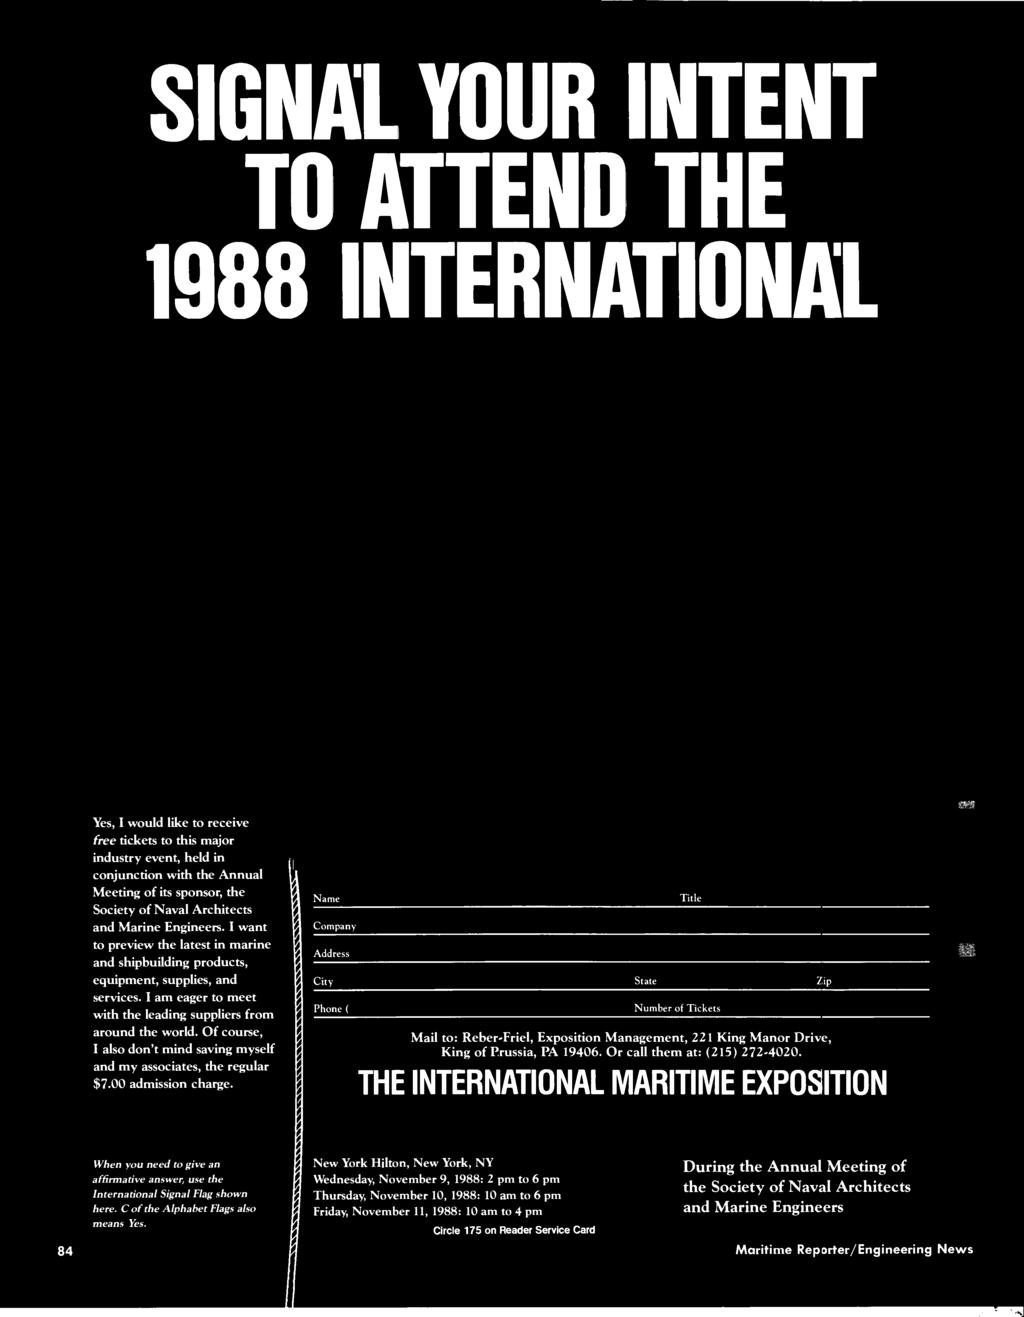 SIGNAL YOUR INTENT TO ATTEND THE 1988 INTERNATIONAL Yes, I would like to receive free tickets to this major industry event, held in conjunction with the Annual Meeting of its sponsor, the Society of